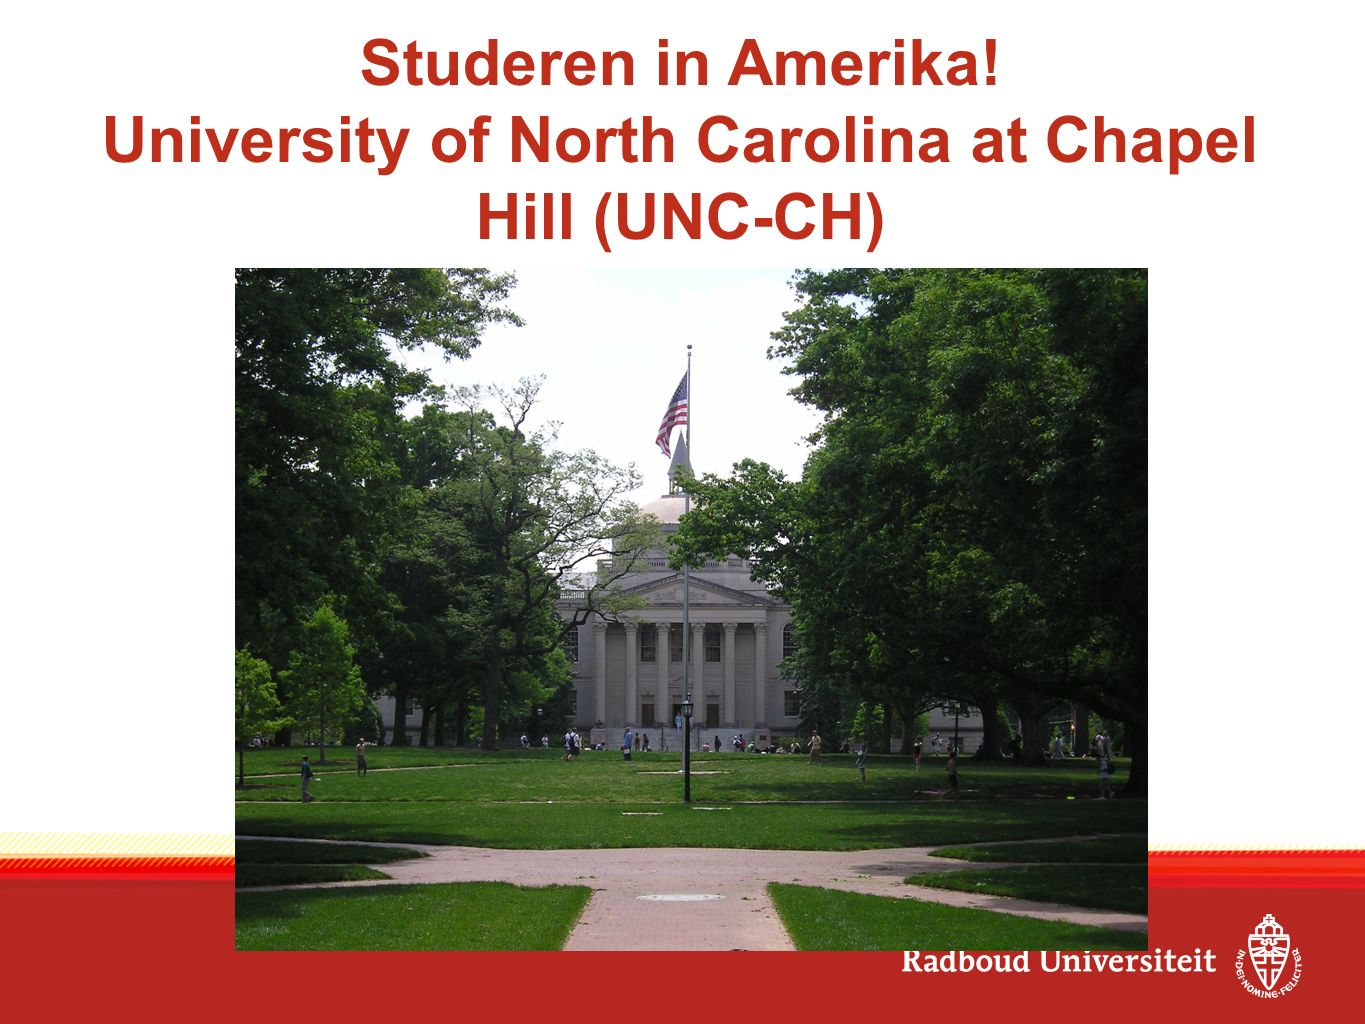 Studeren in Amerika! University of North Carolina at Chapel Hill (UNC-CH)